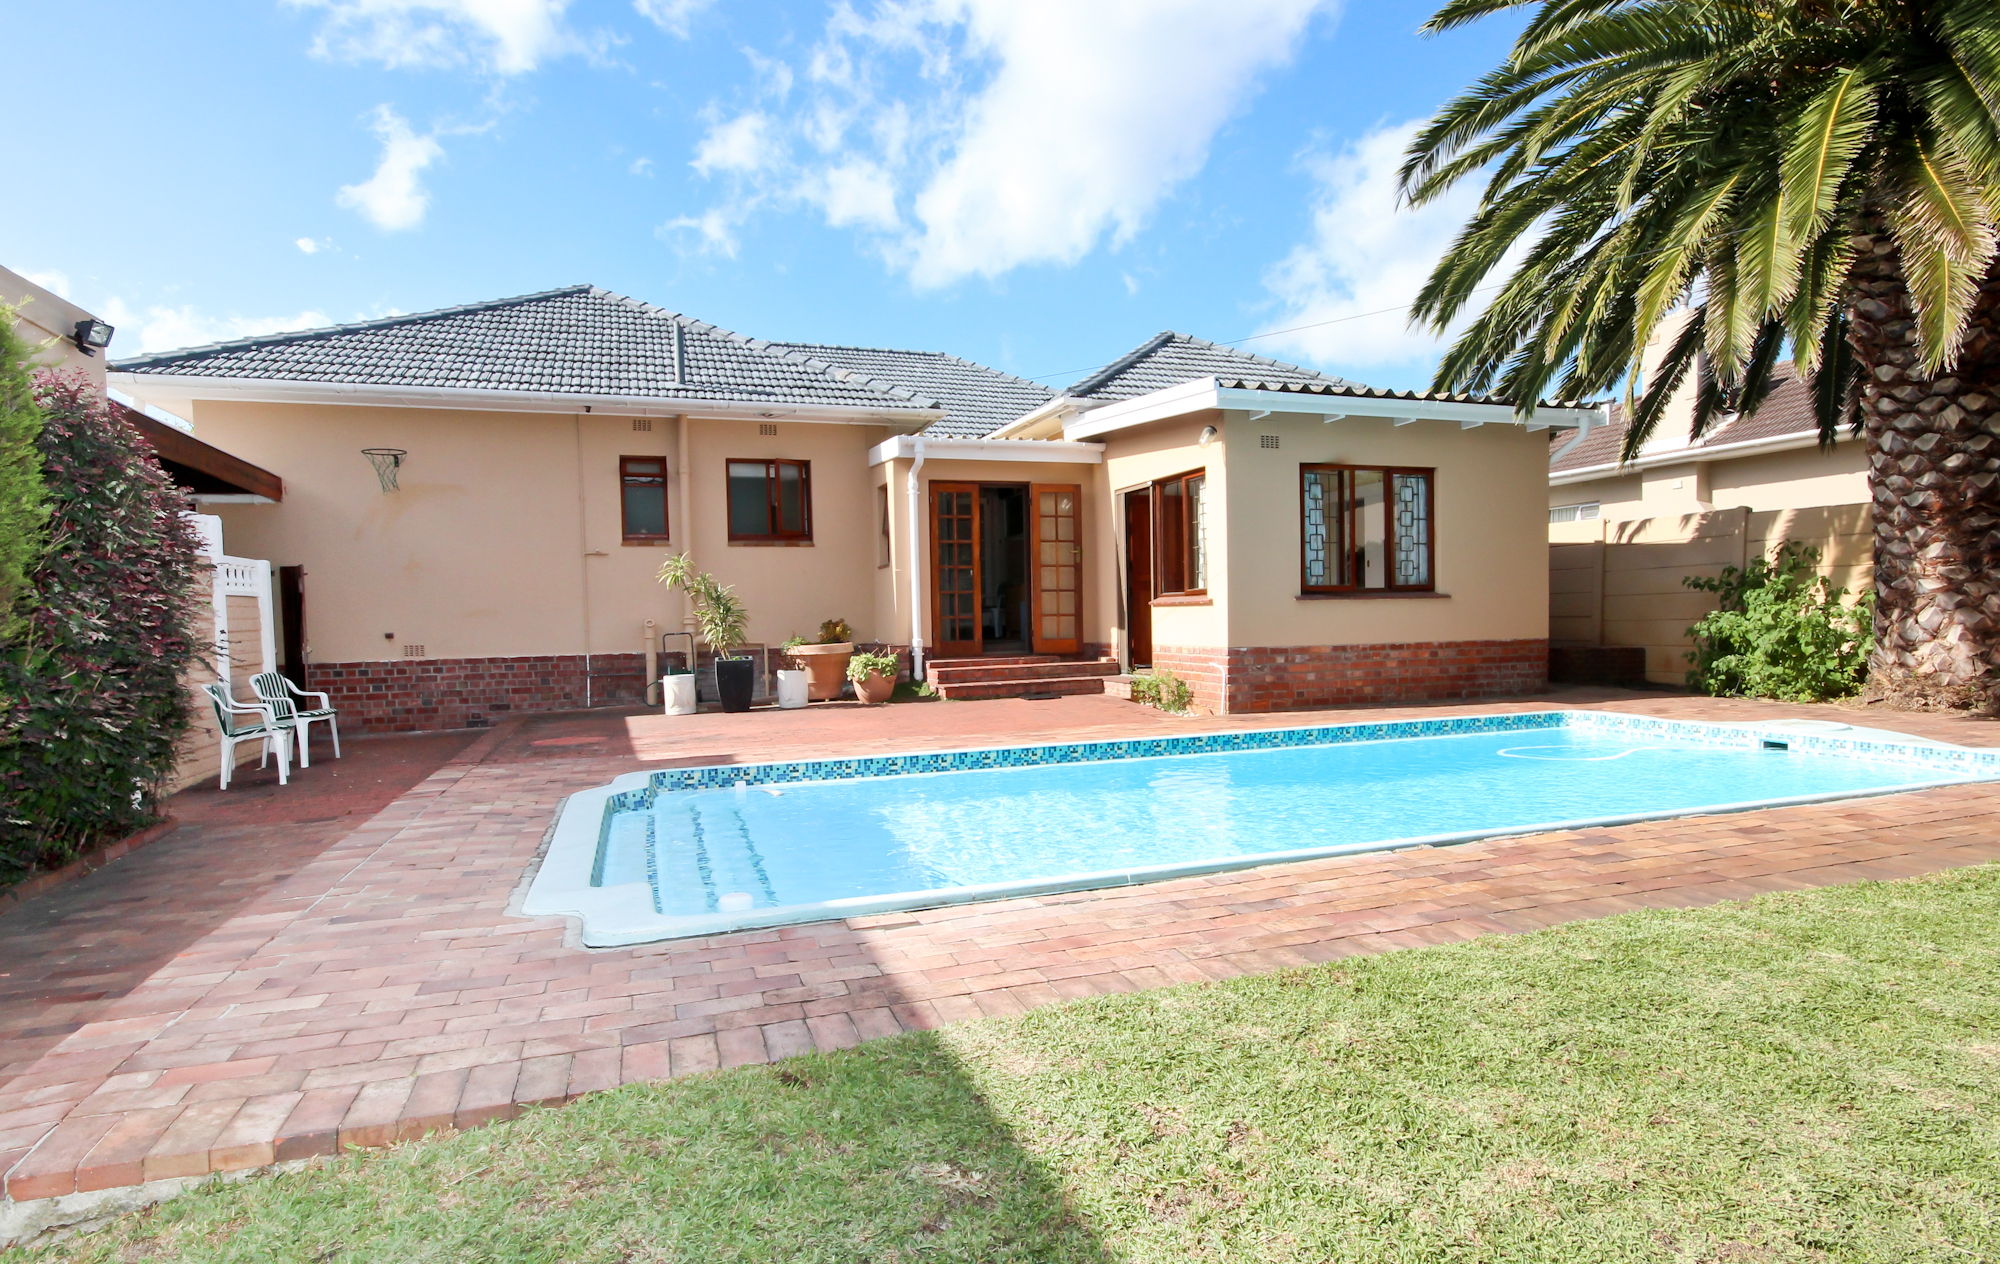 Houses for sale in bergvliet bergvliet for Show house for sale